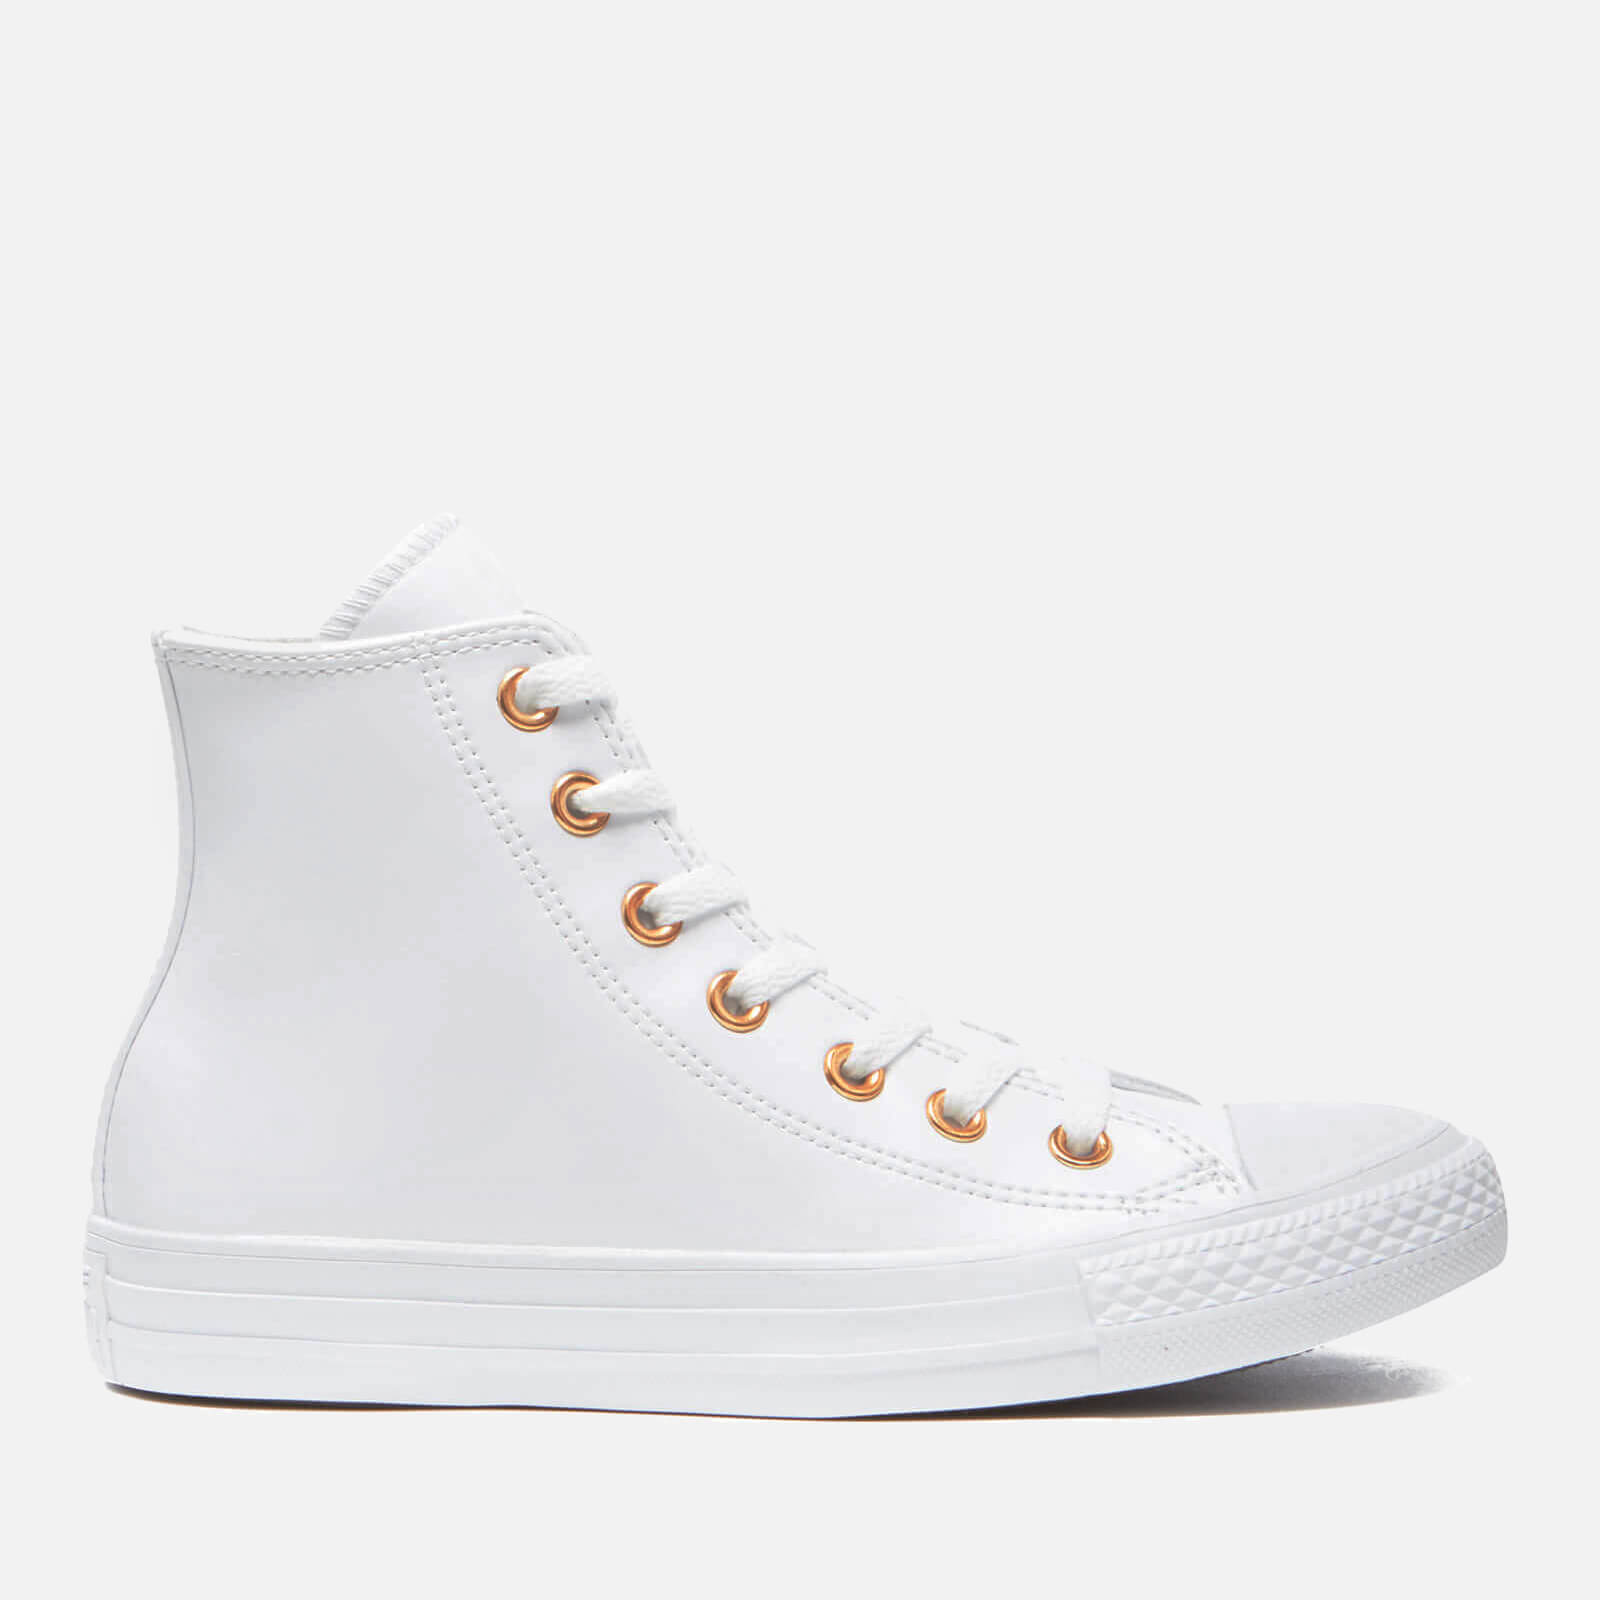 d573d3aa1030 Converse Women s Chuck Taylor All Star Hi-Top Trainers - White Gold - Free  UK Delivery over £50